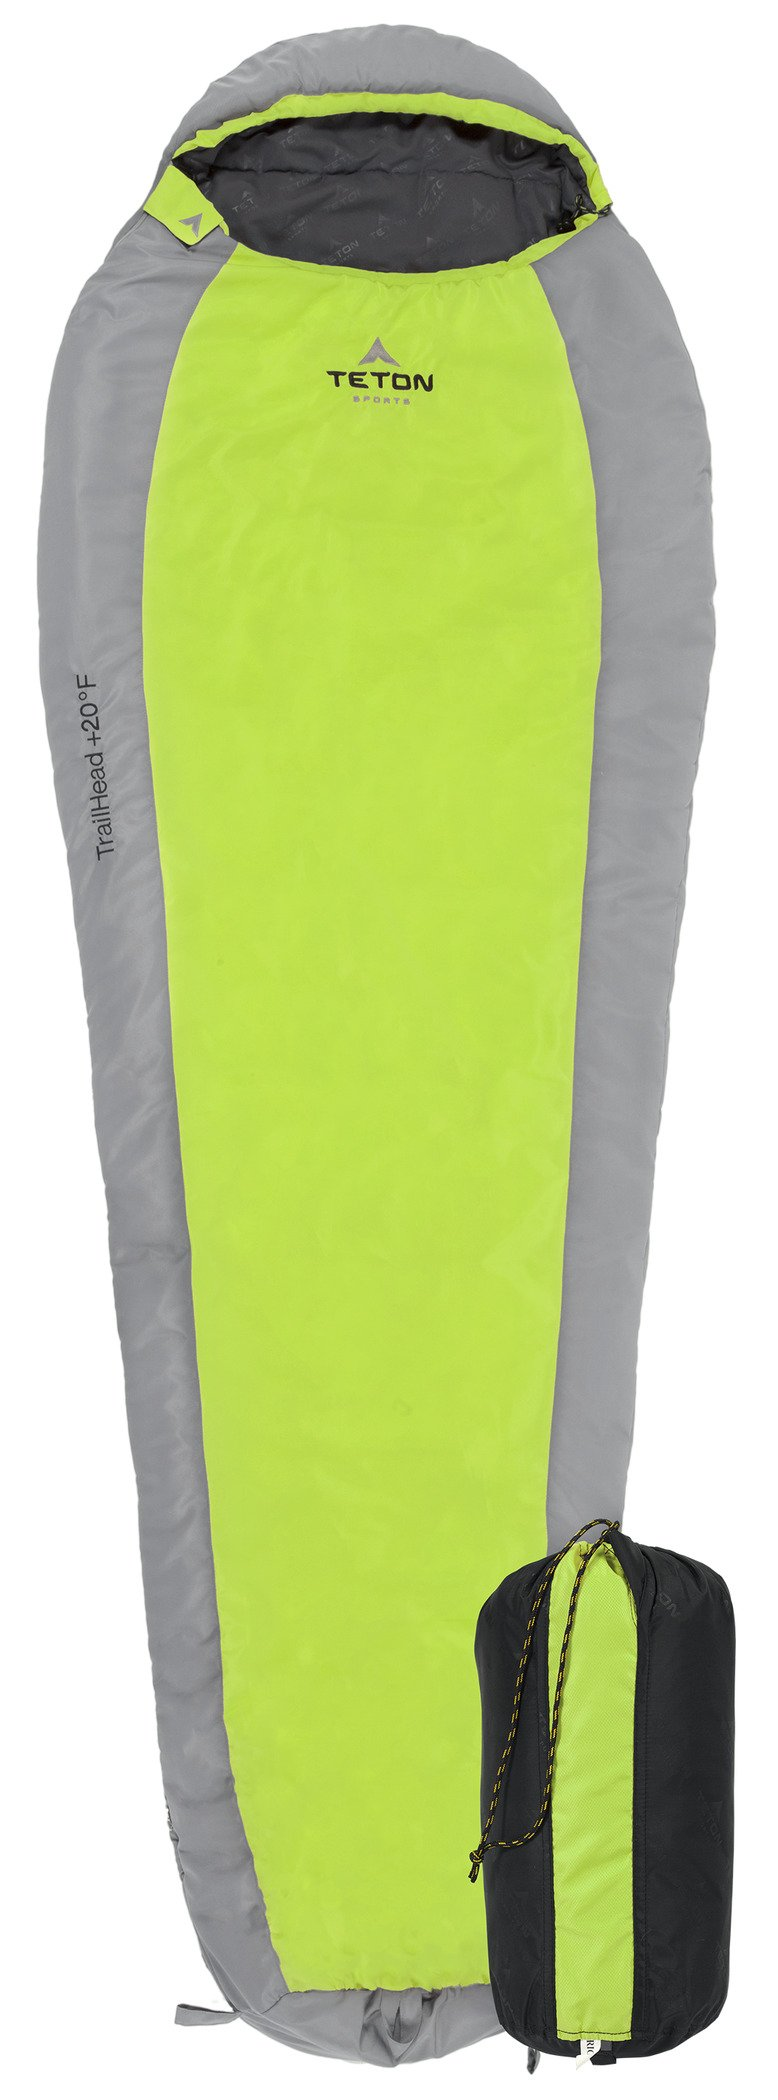 TETON Sports TrailHead Scout Ultralight Mummy Sleeping Bag; Lightweight Backpacking Sleeping Bag for Hiking and Camping Outdoors; Never Roll Your Sleeping Bag Again; Green/Grey by TETON Sports